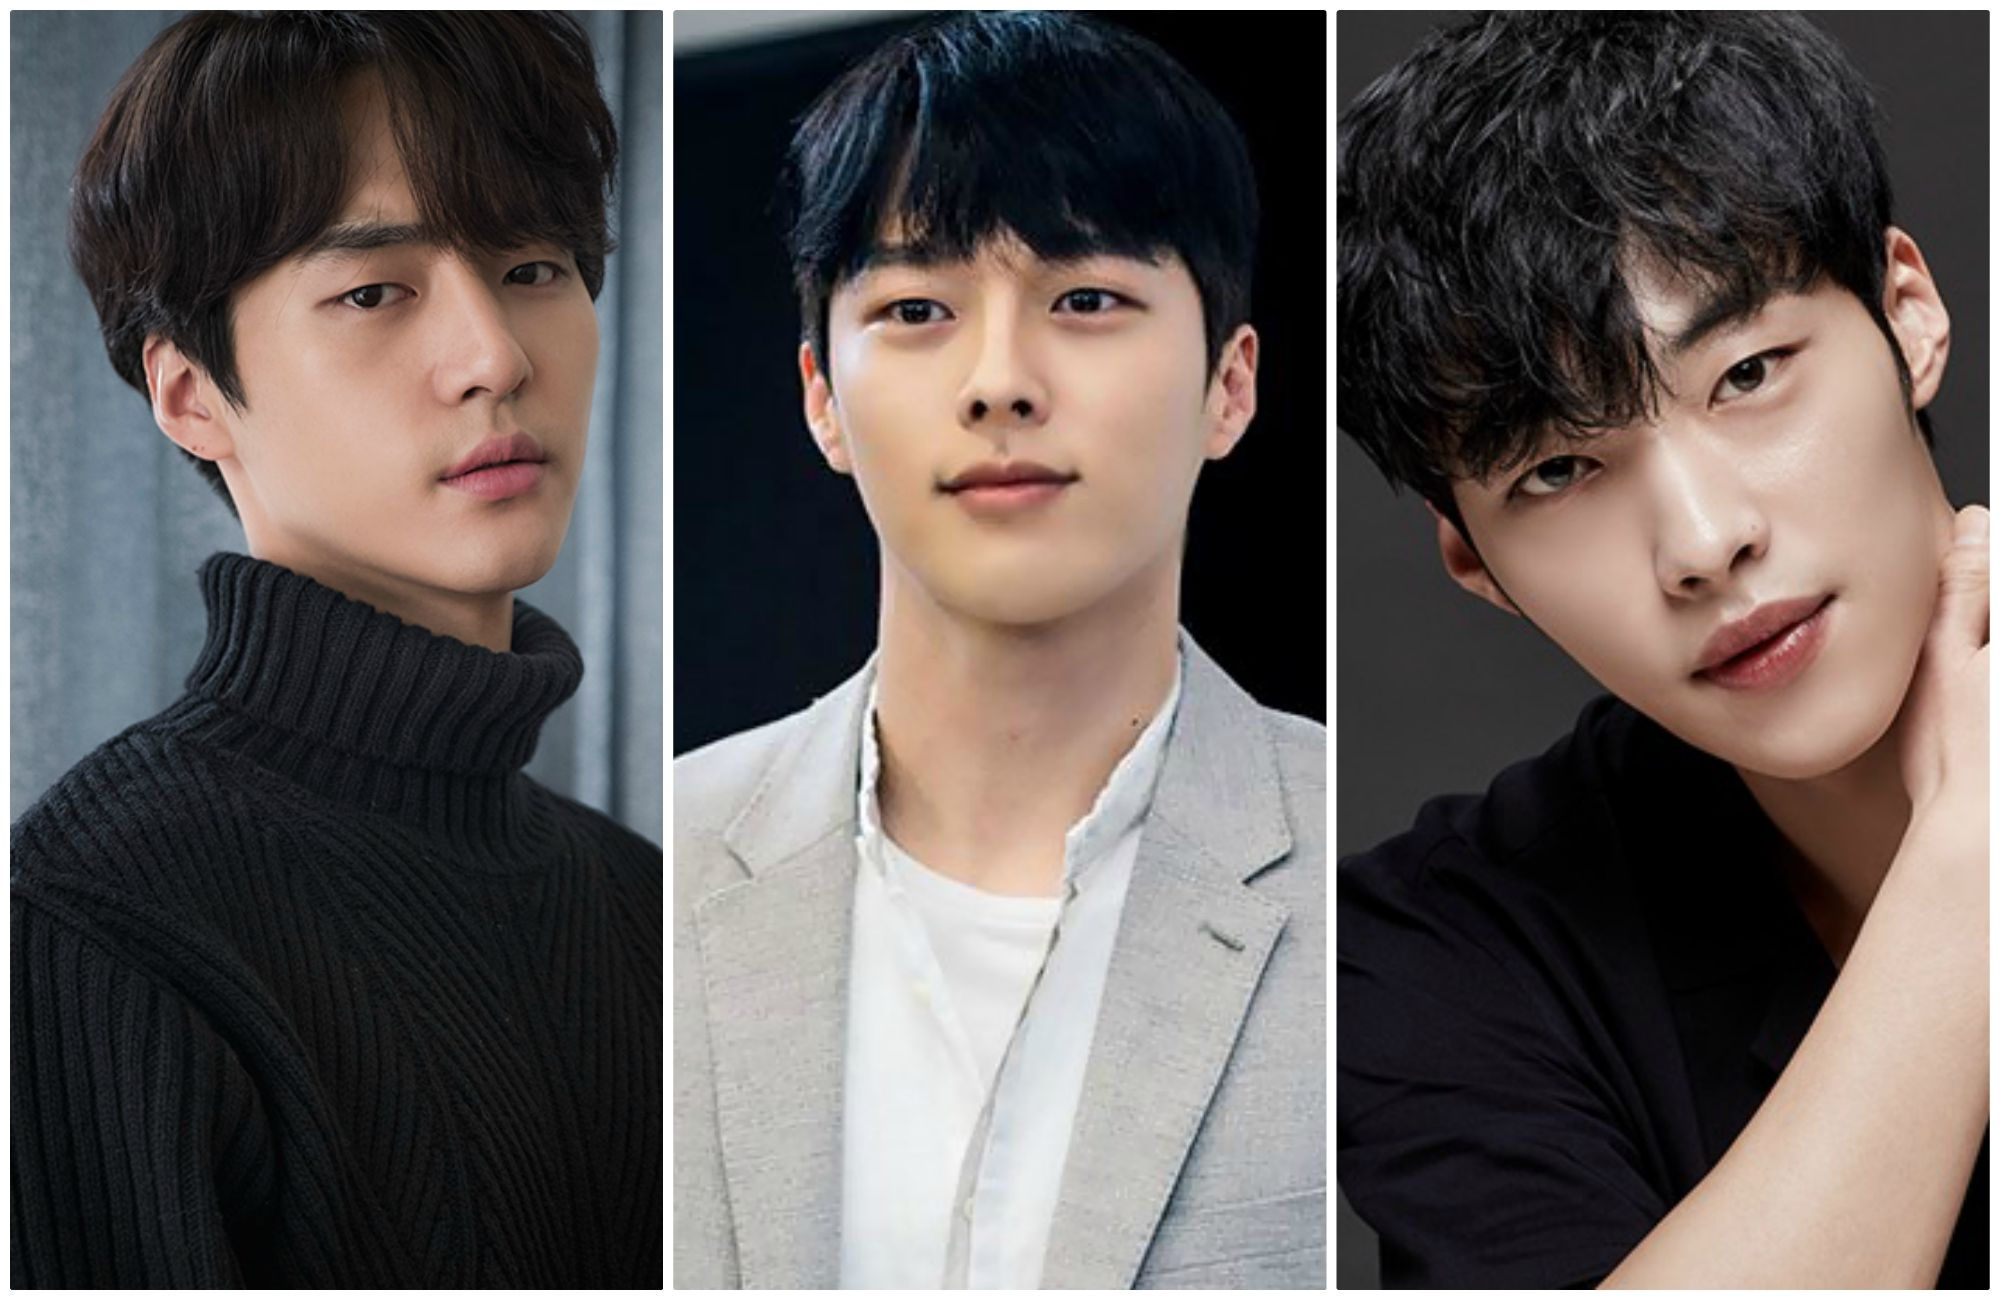 [K-Star]: 3 Actors Born In 1992 Who Have To Go For Military Service By 2020